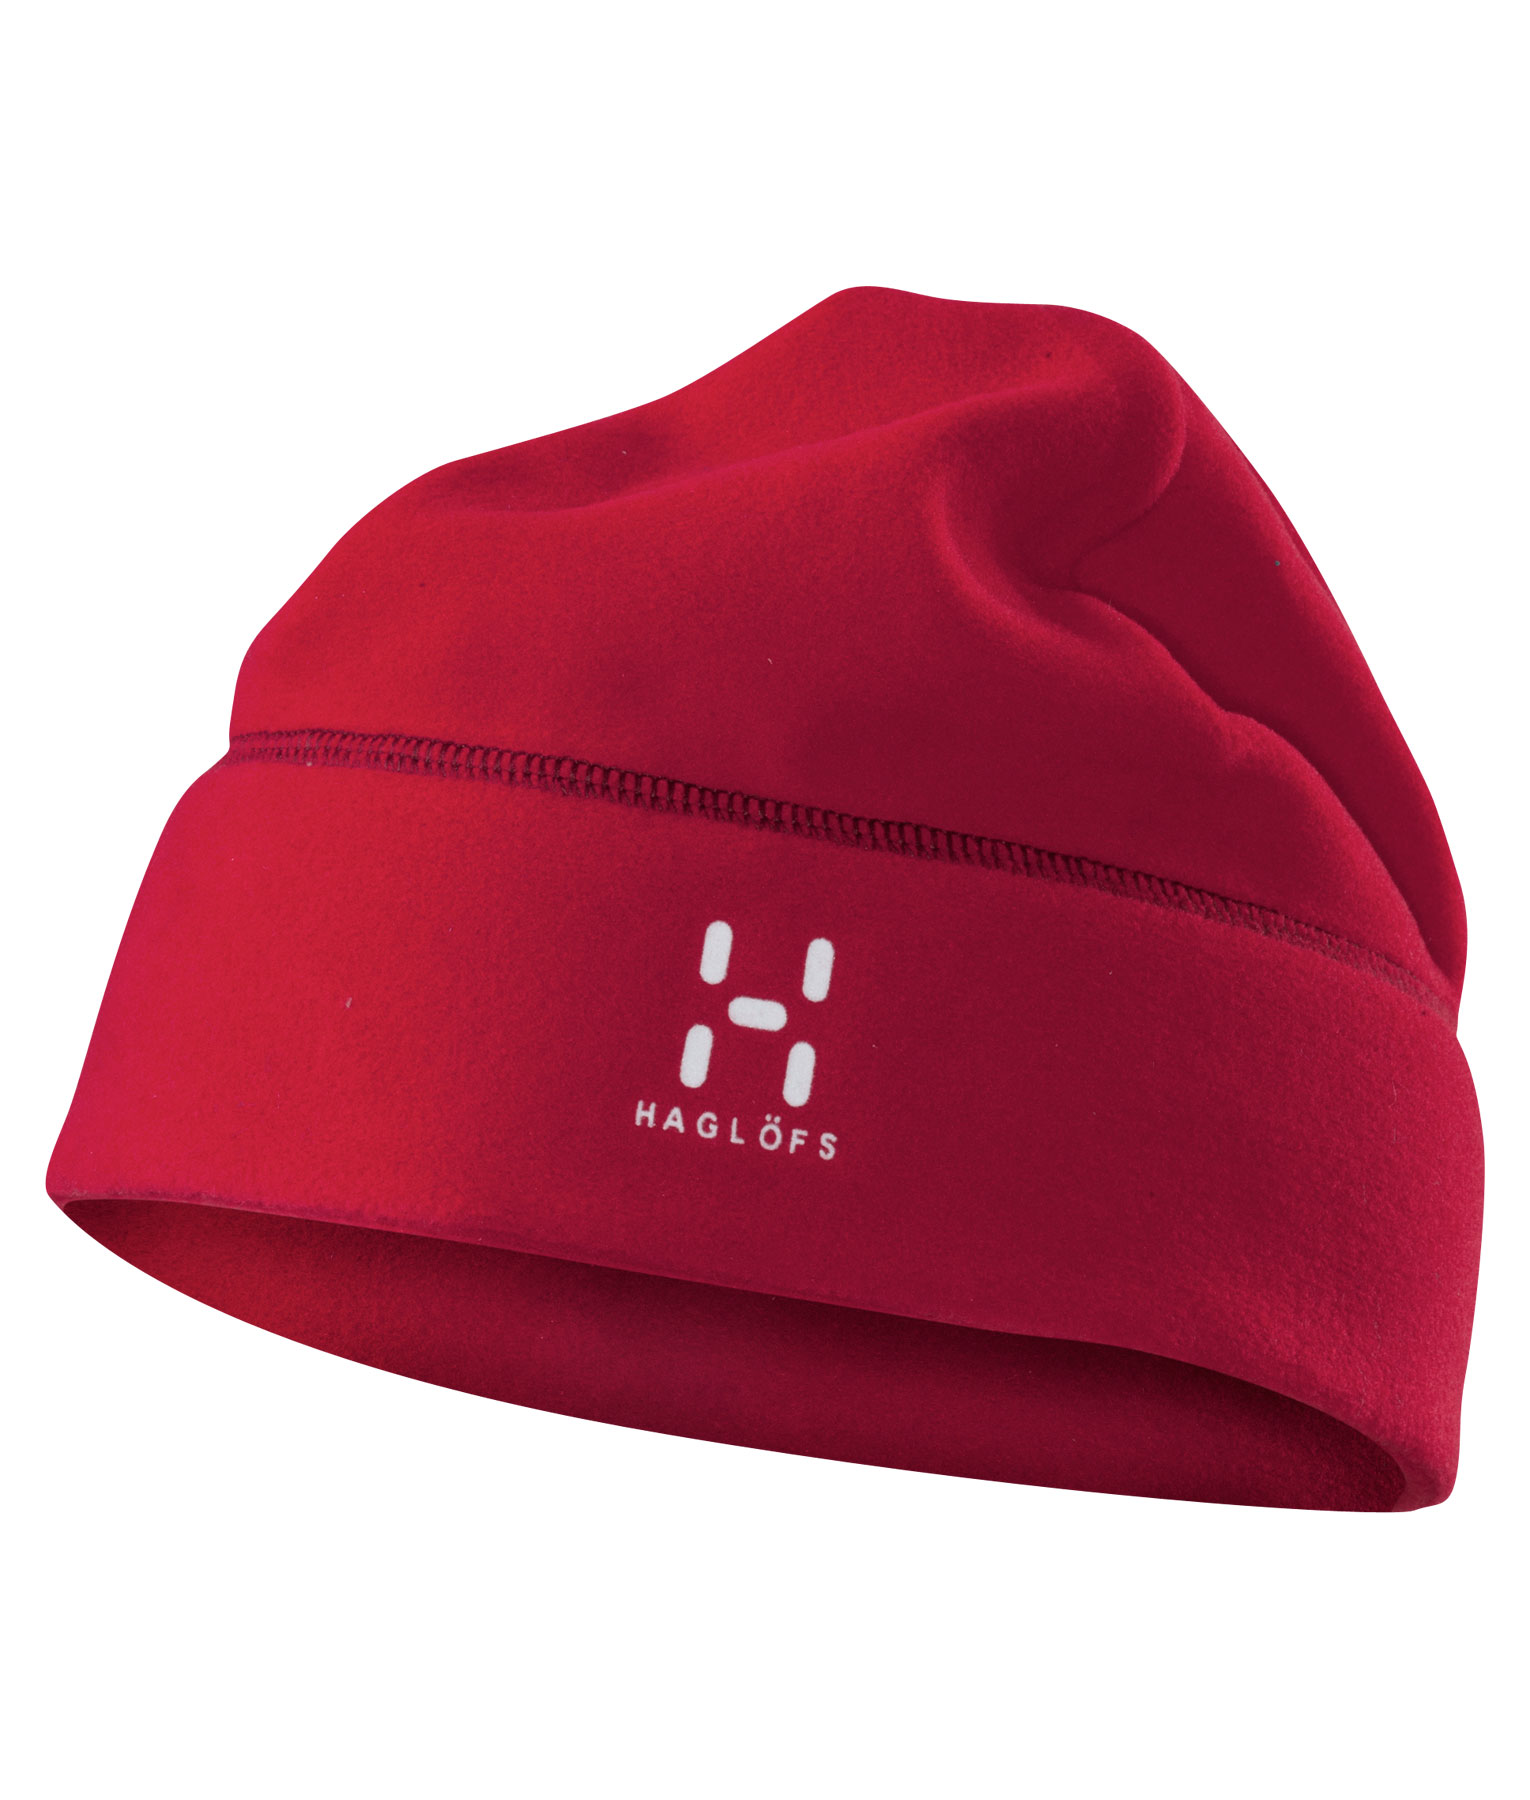 Haglöfs Wind Cap deep red